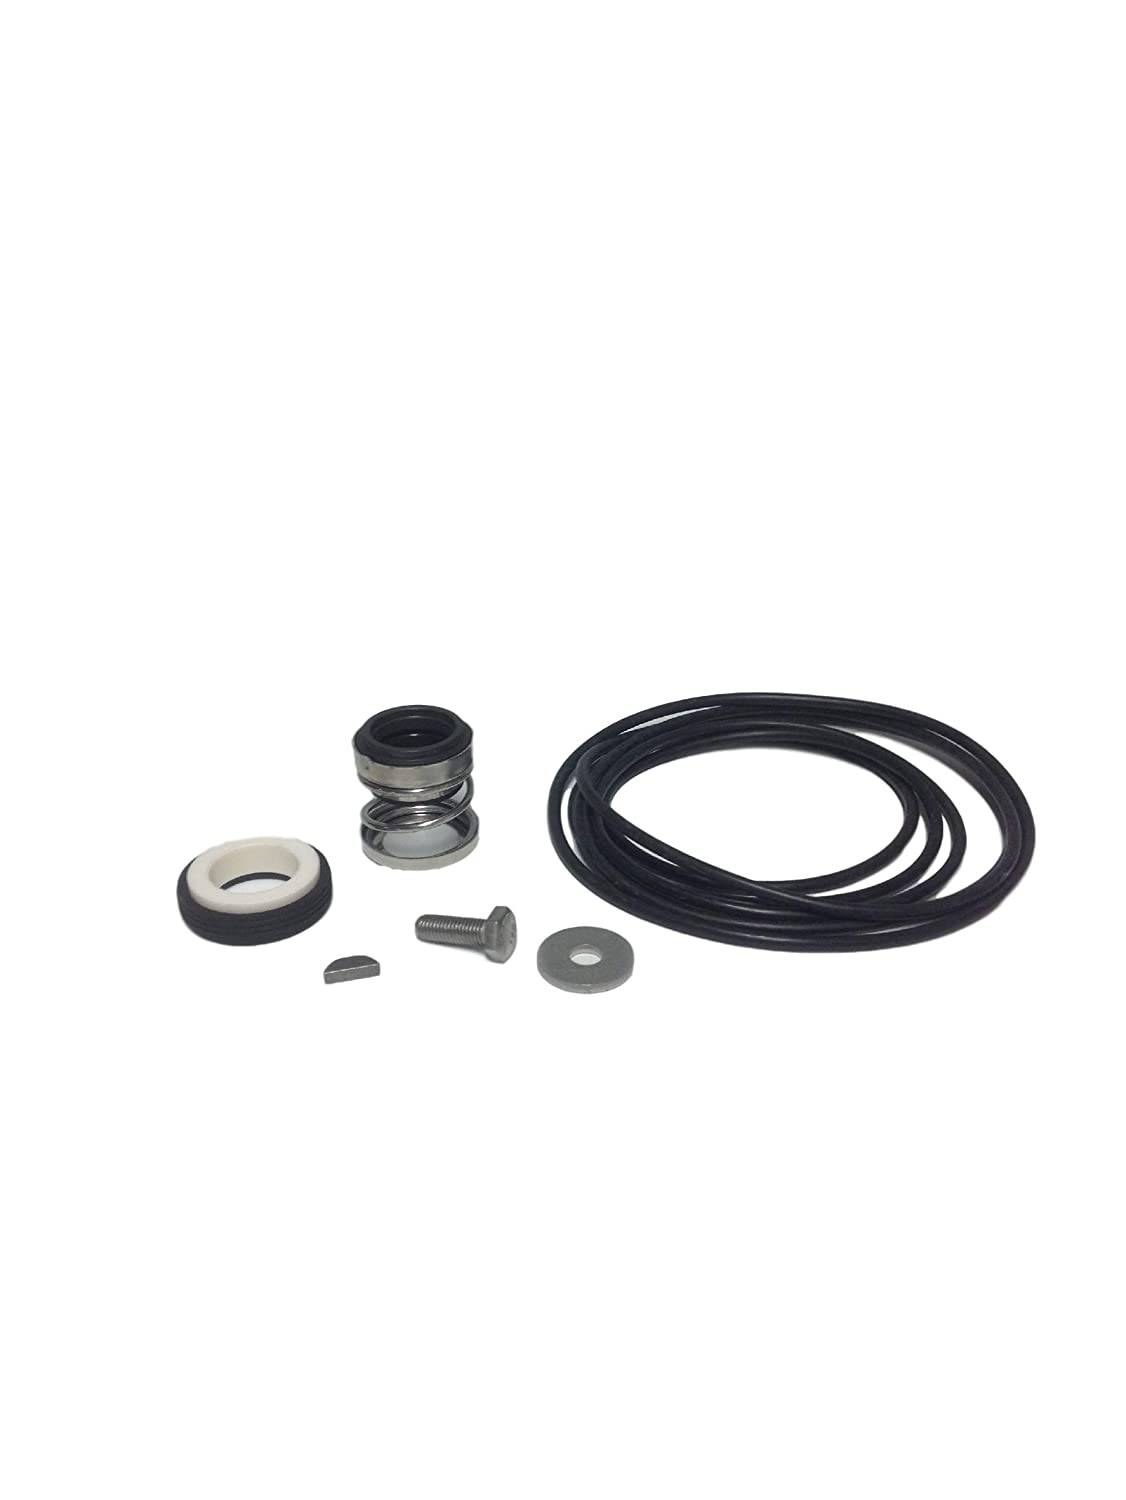 Mesco Corp Replacement kit for Aurora 2021 new 320 - Series 321 323 Selling rankings 324